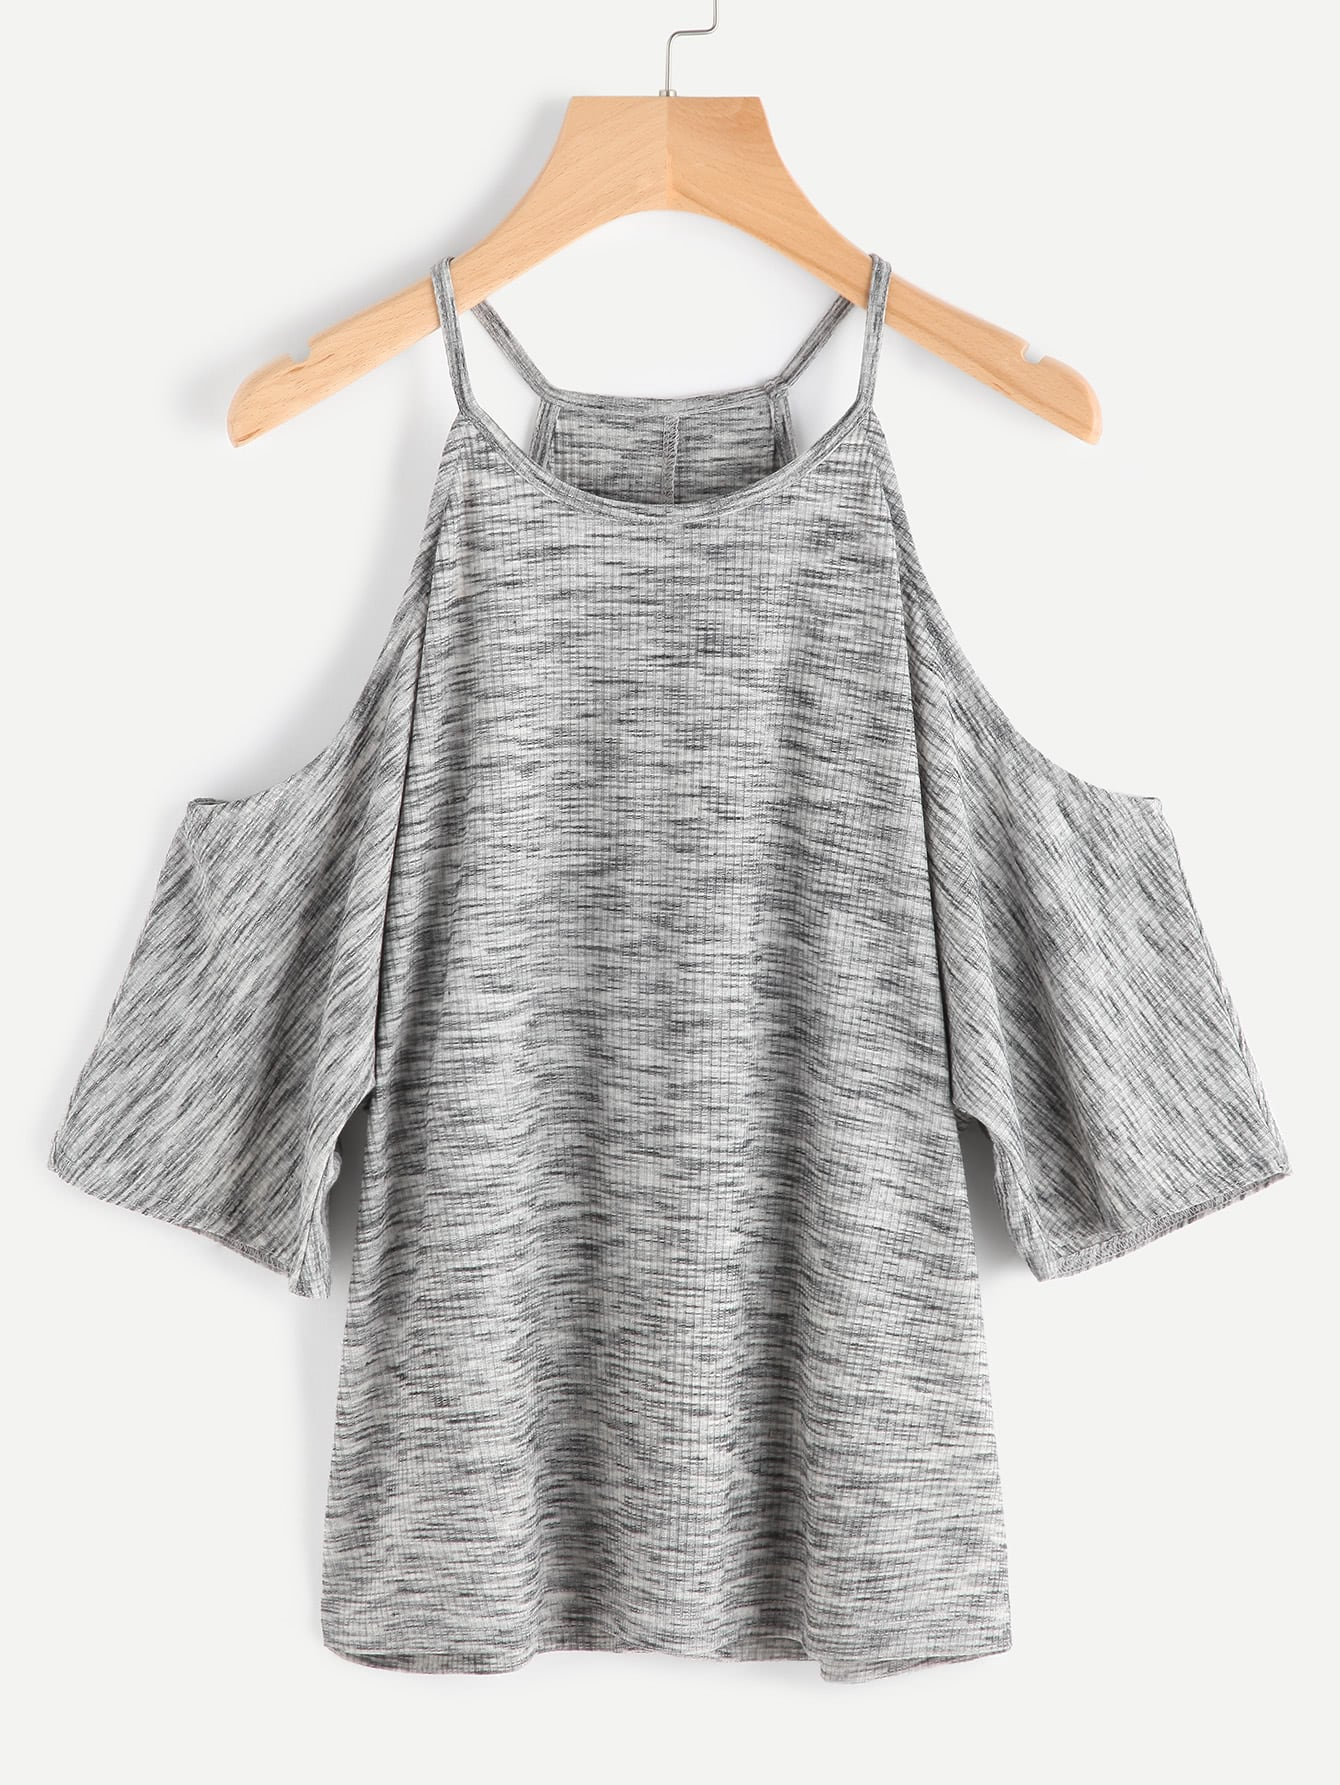 Cold Shoulder Space Dye Ribbed Tee tee170410705